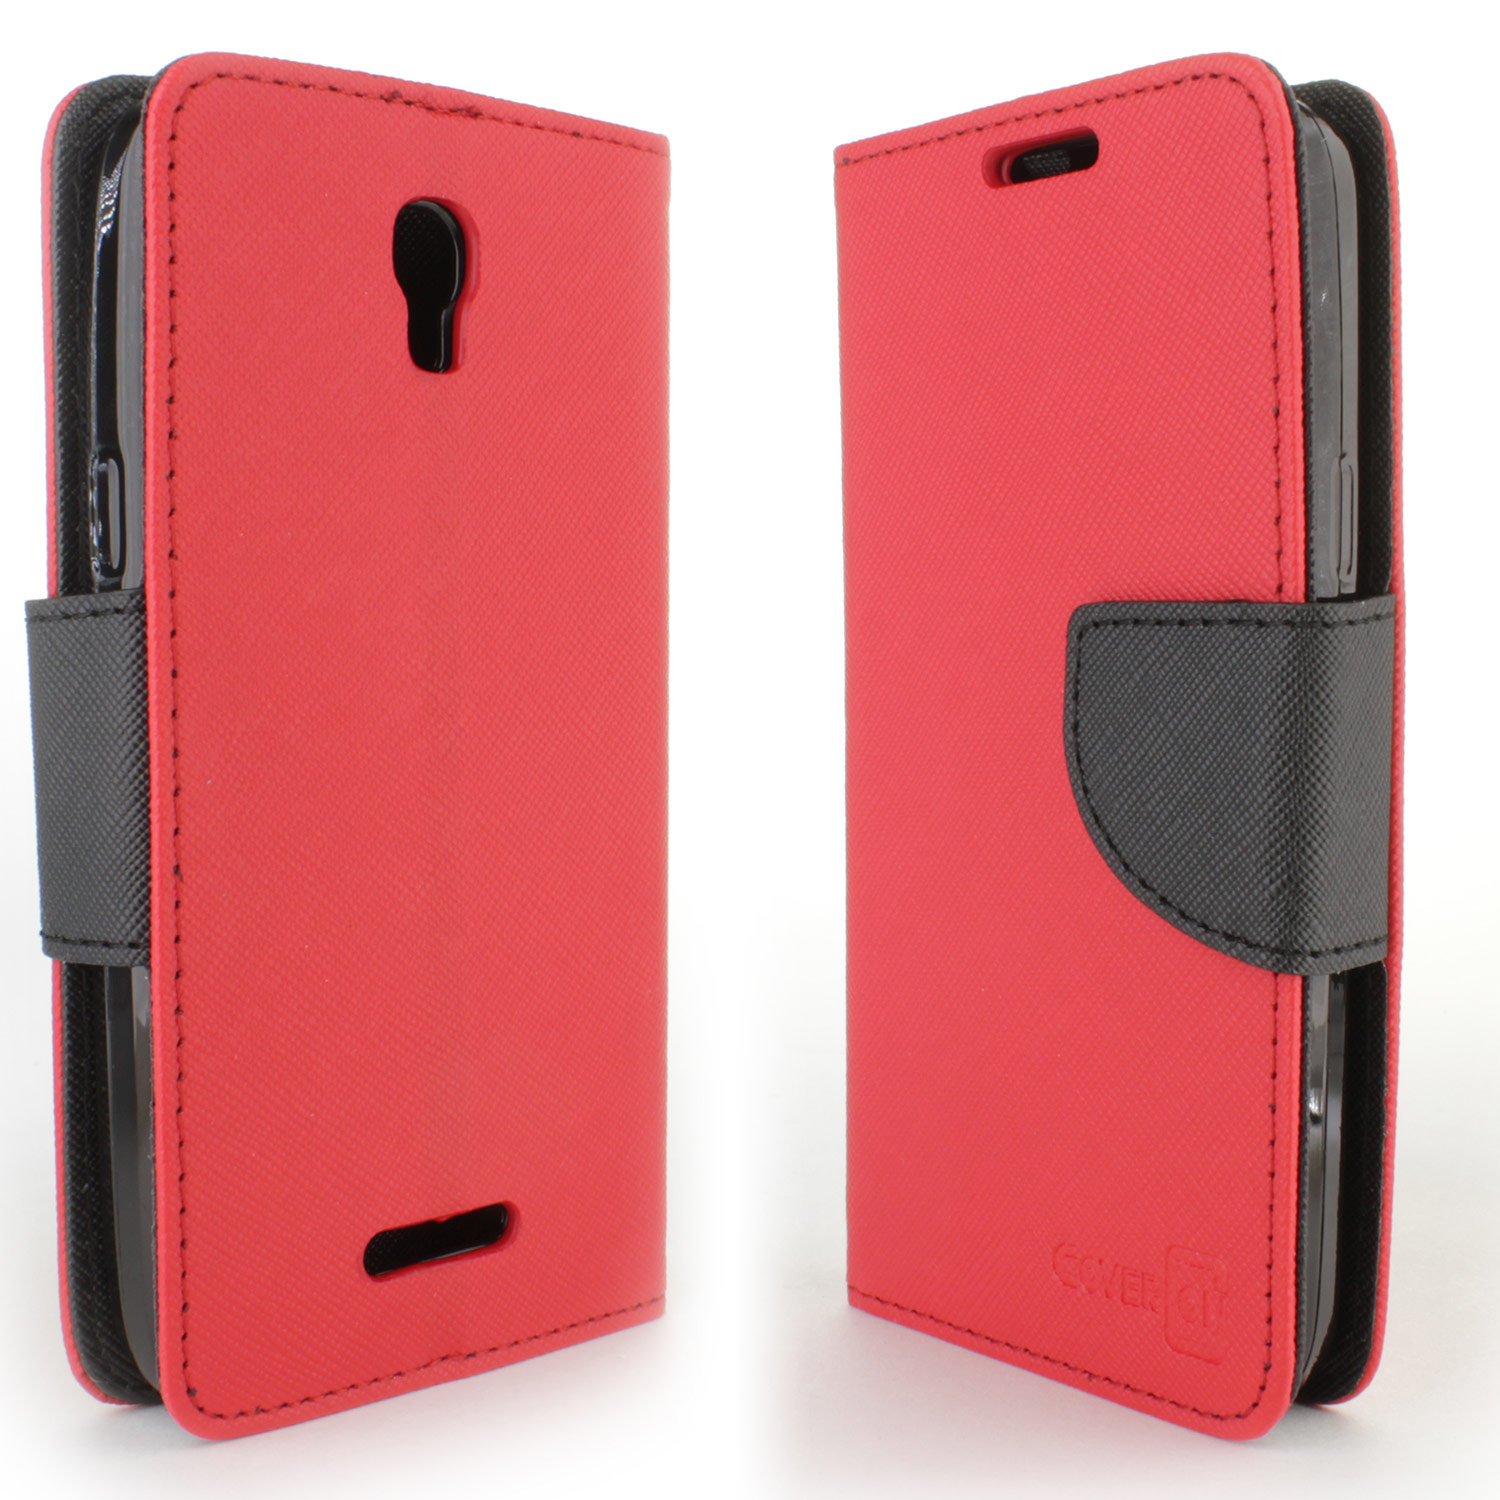 Wallet pouch design phone cover case for alcatel one touch